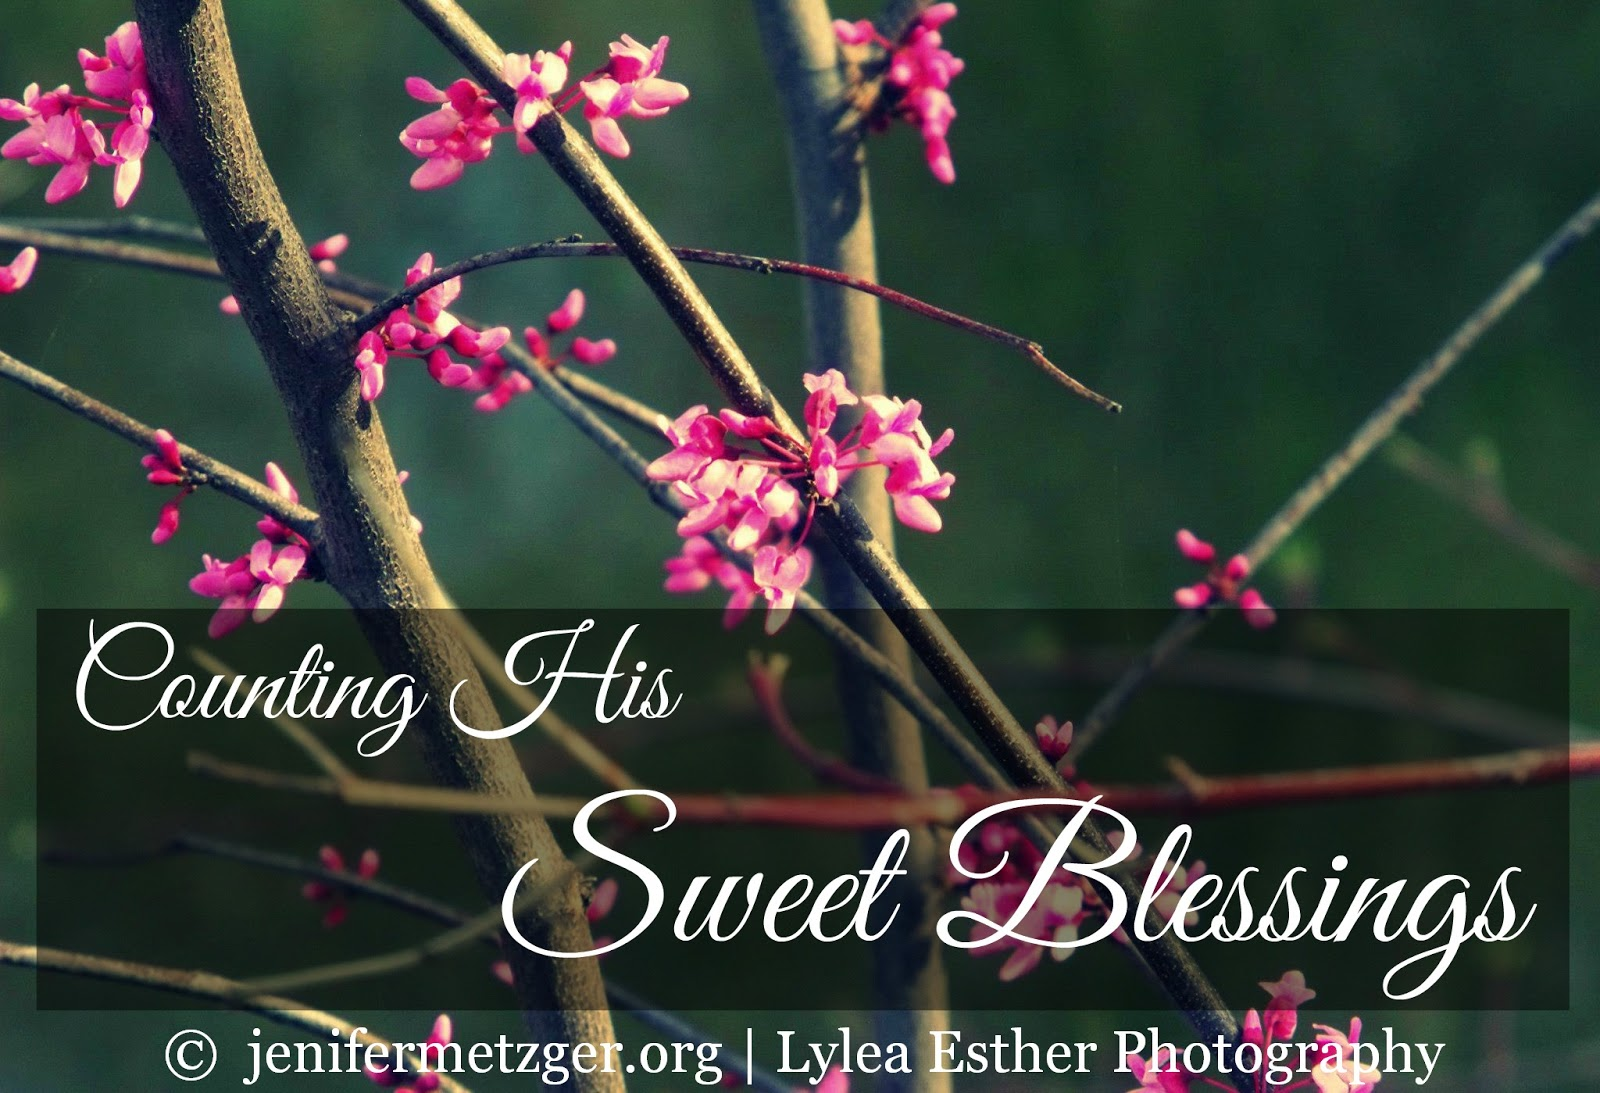 Counting His Sweet #Blessings #thanksgiving #gratefulness